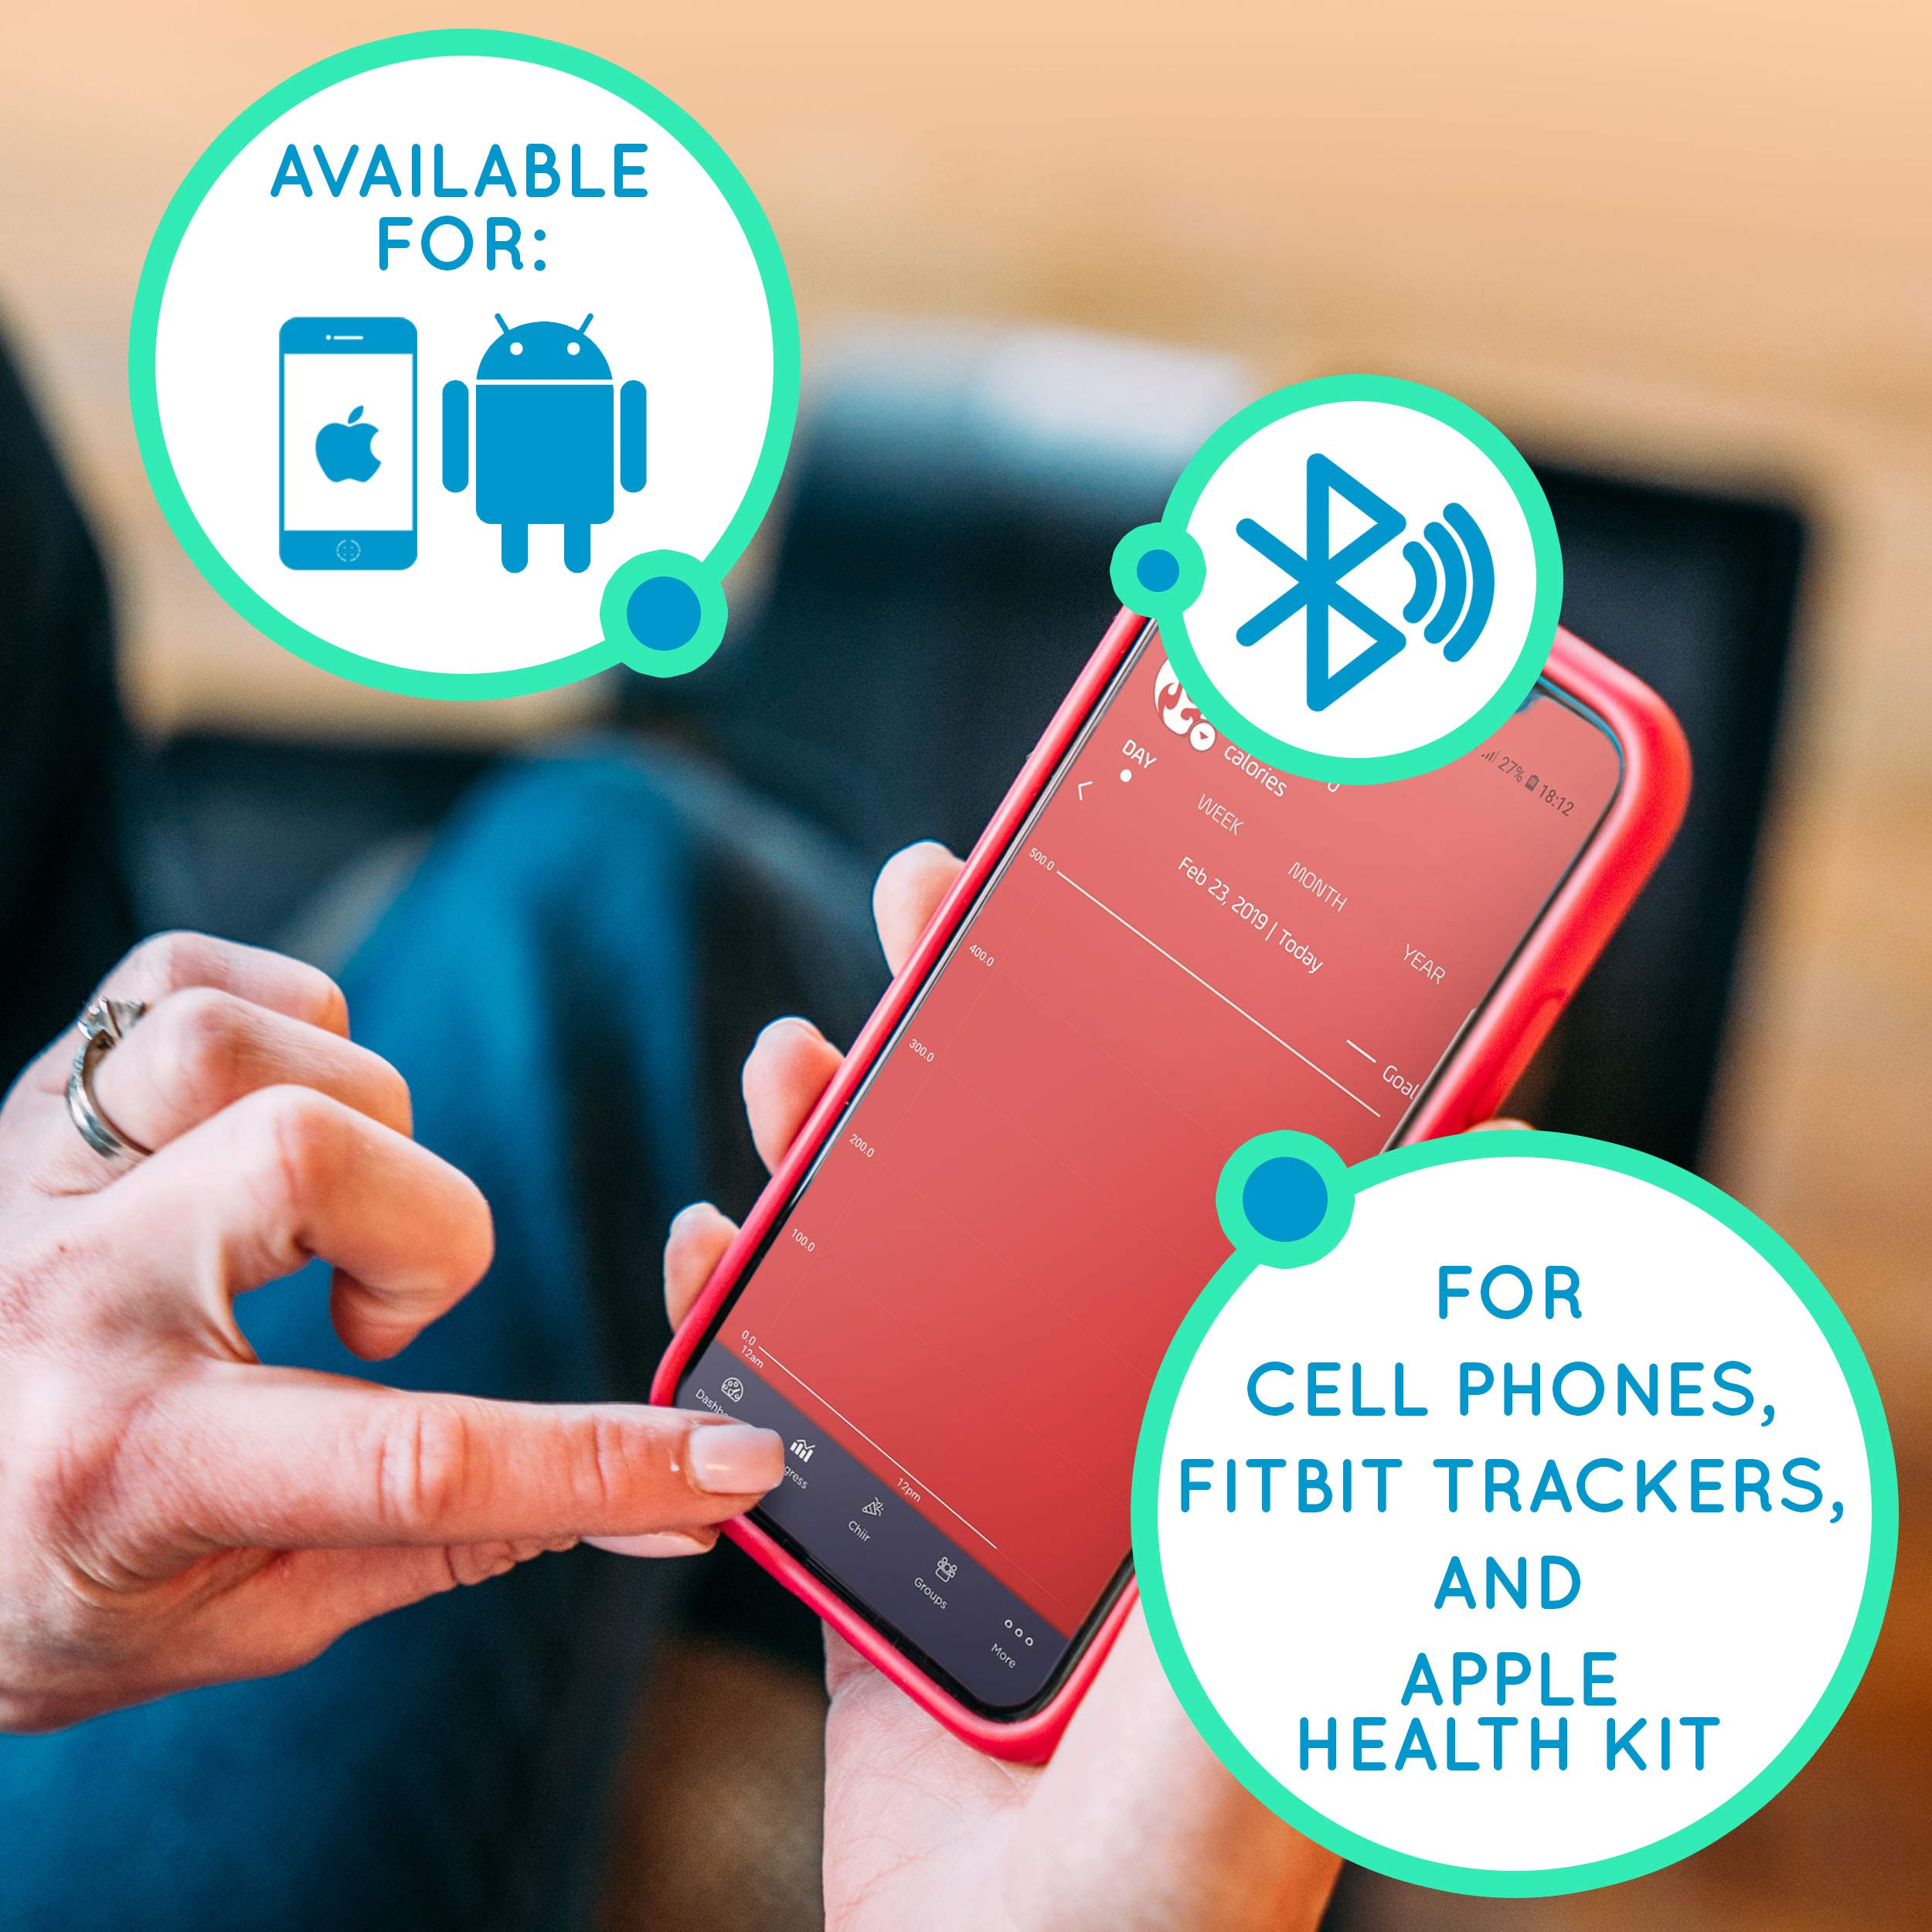 Cubii Pro Under Desk Elliptical, Bluetooth Enabled, Sync with Fitbit and HealthKit, Adjustable Resistance, Easy Assembly (Noir) by Cubii (Image #5)